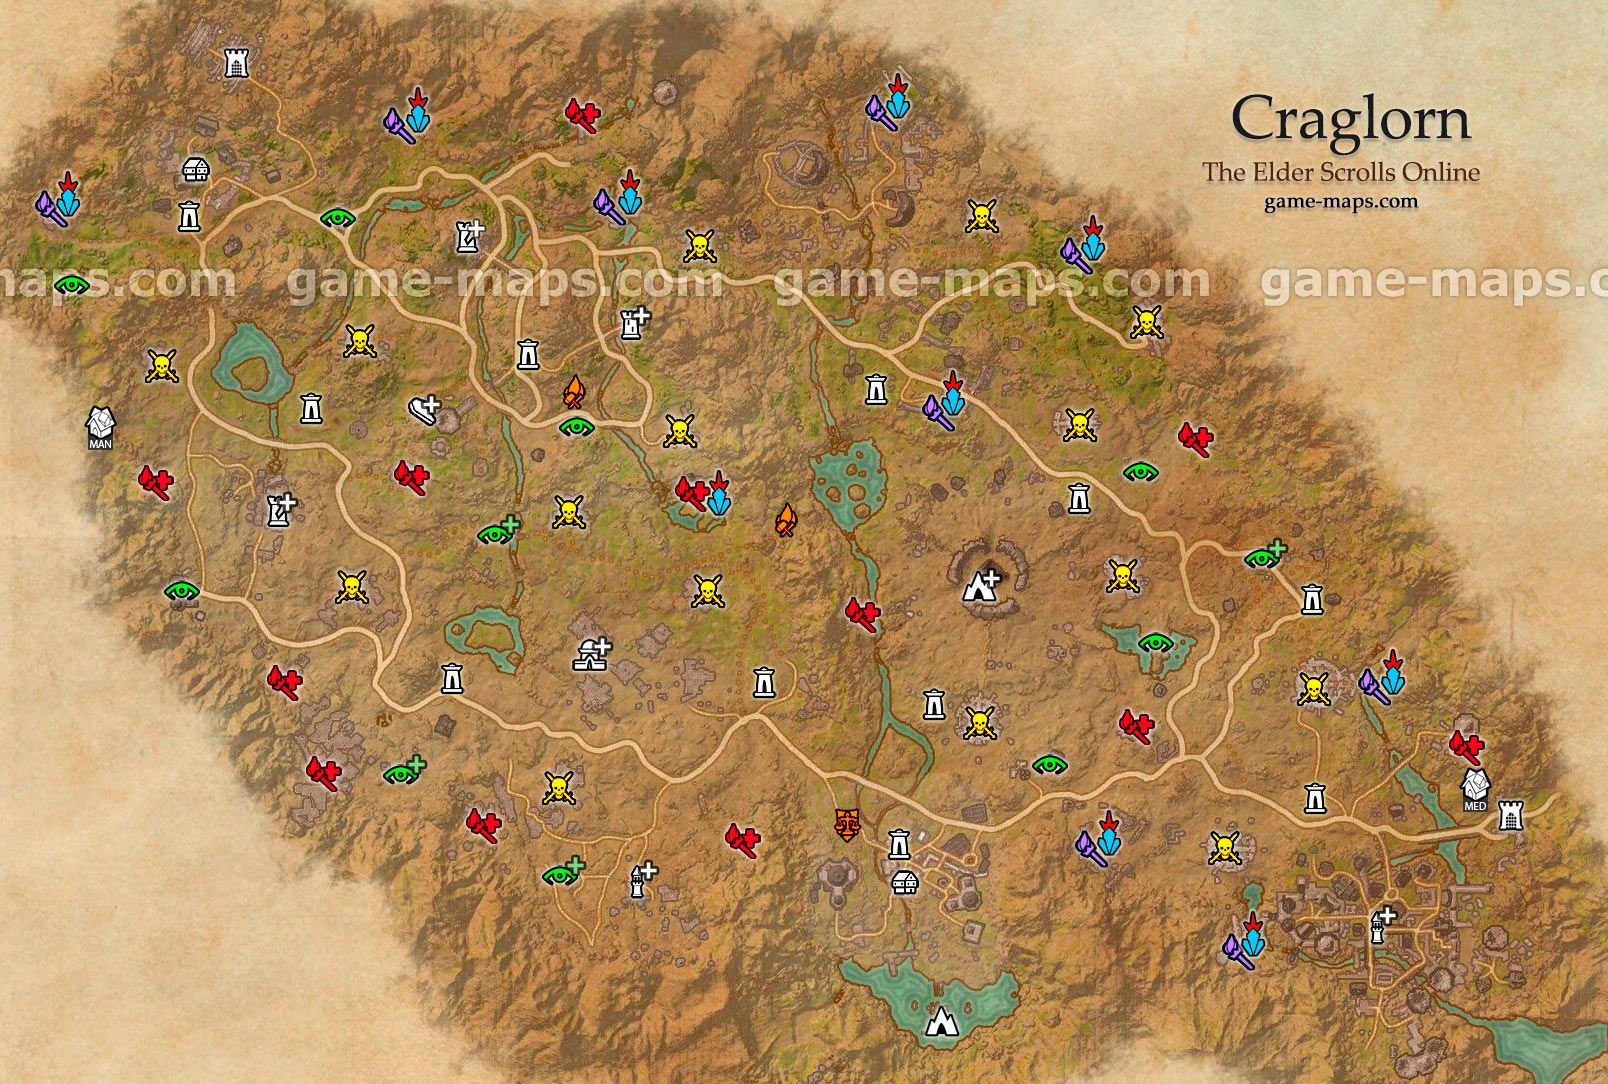 craglorn zone map elder scrolls online tamriel unlimited locales wayshrines skyshards solo public and group dungeons cities world bosses taverns